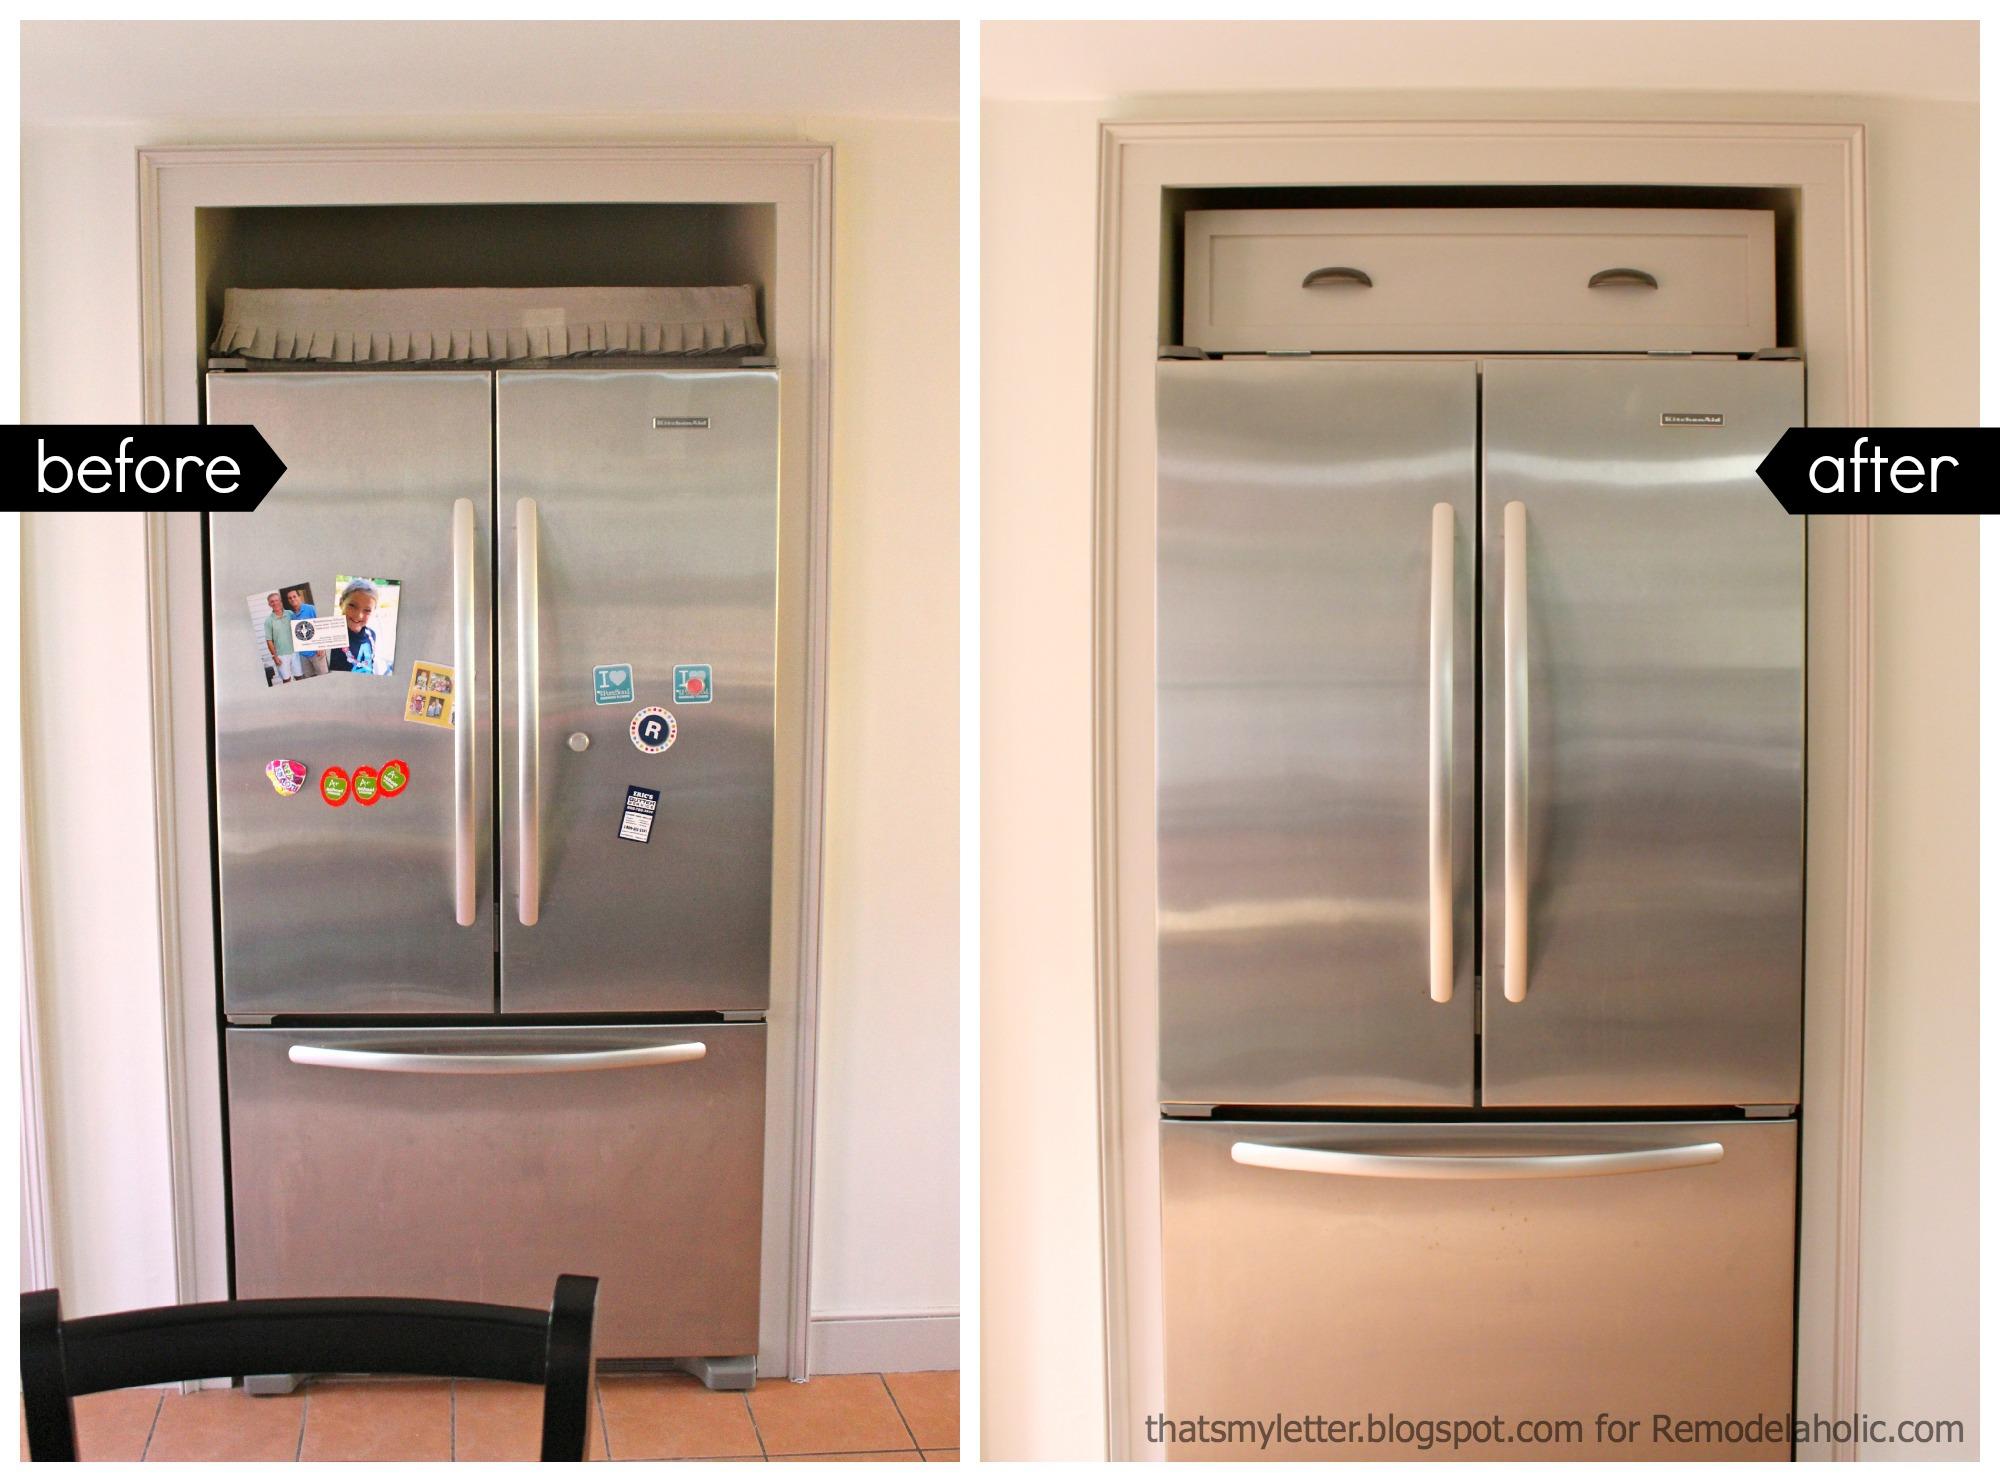 Charming Over Fridge Cabinet Before After